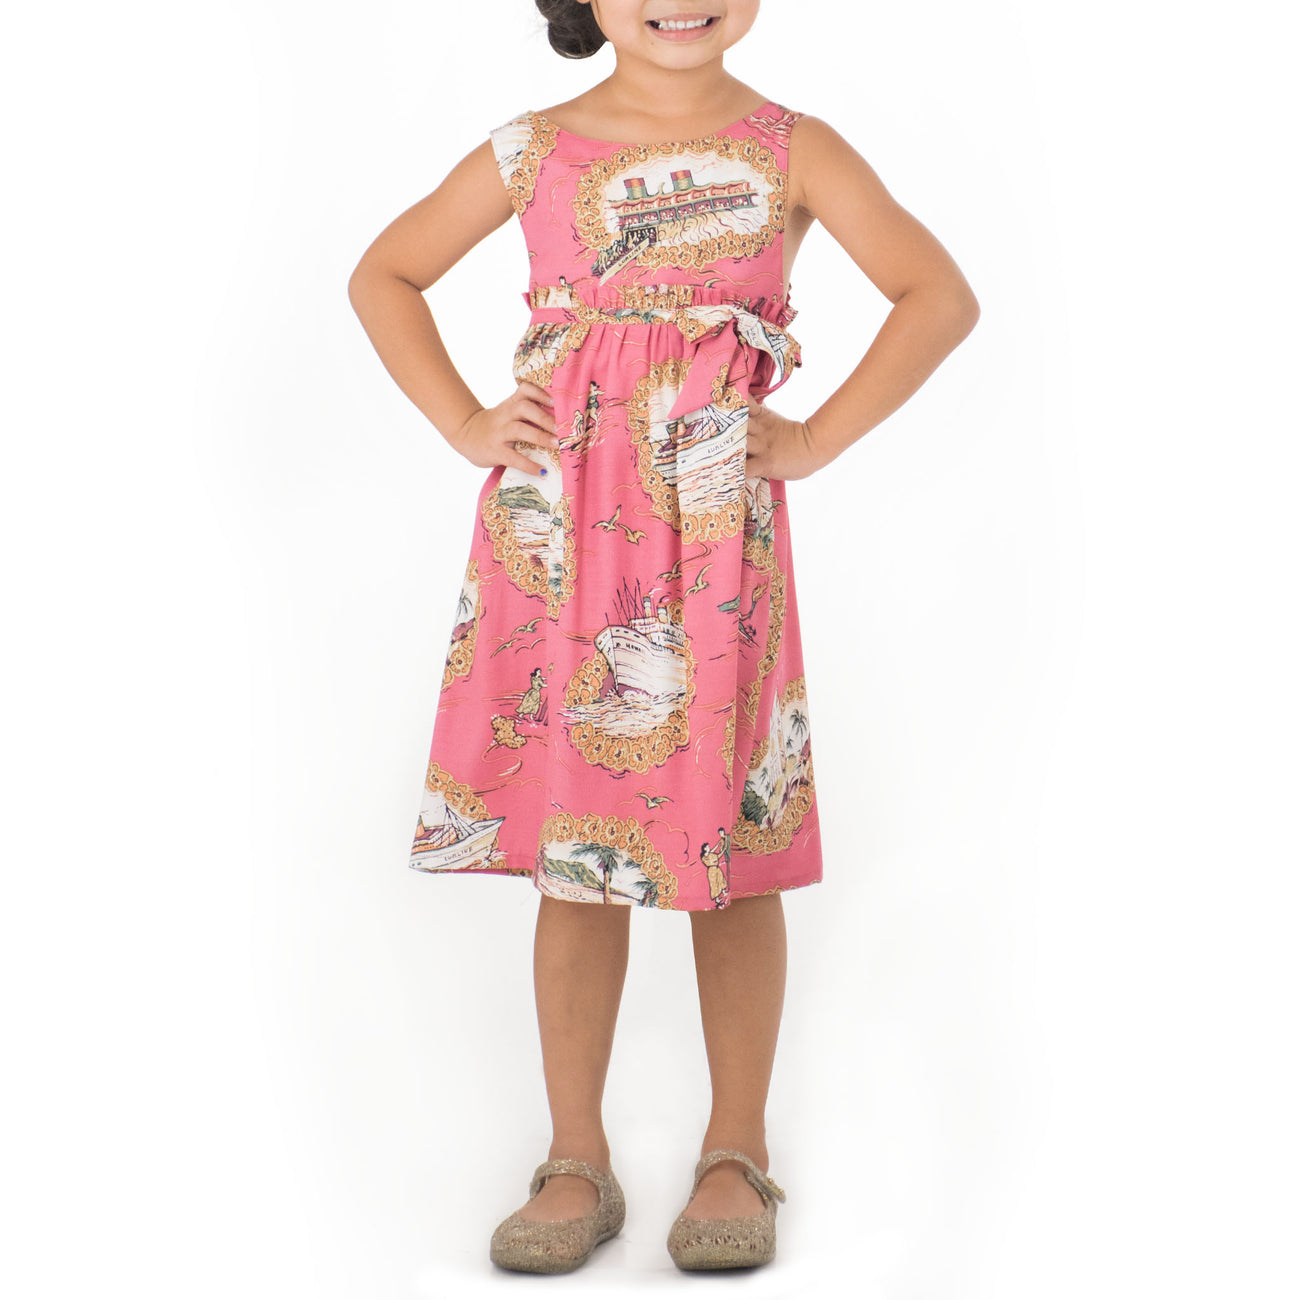 MATSONIA GIRLS SLEEVELESS EMPIRE DRESS